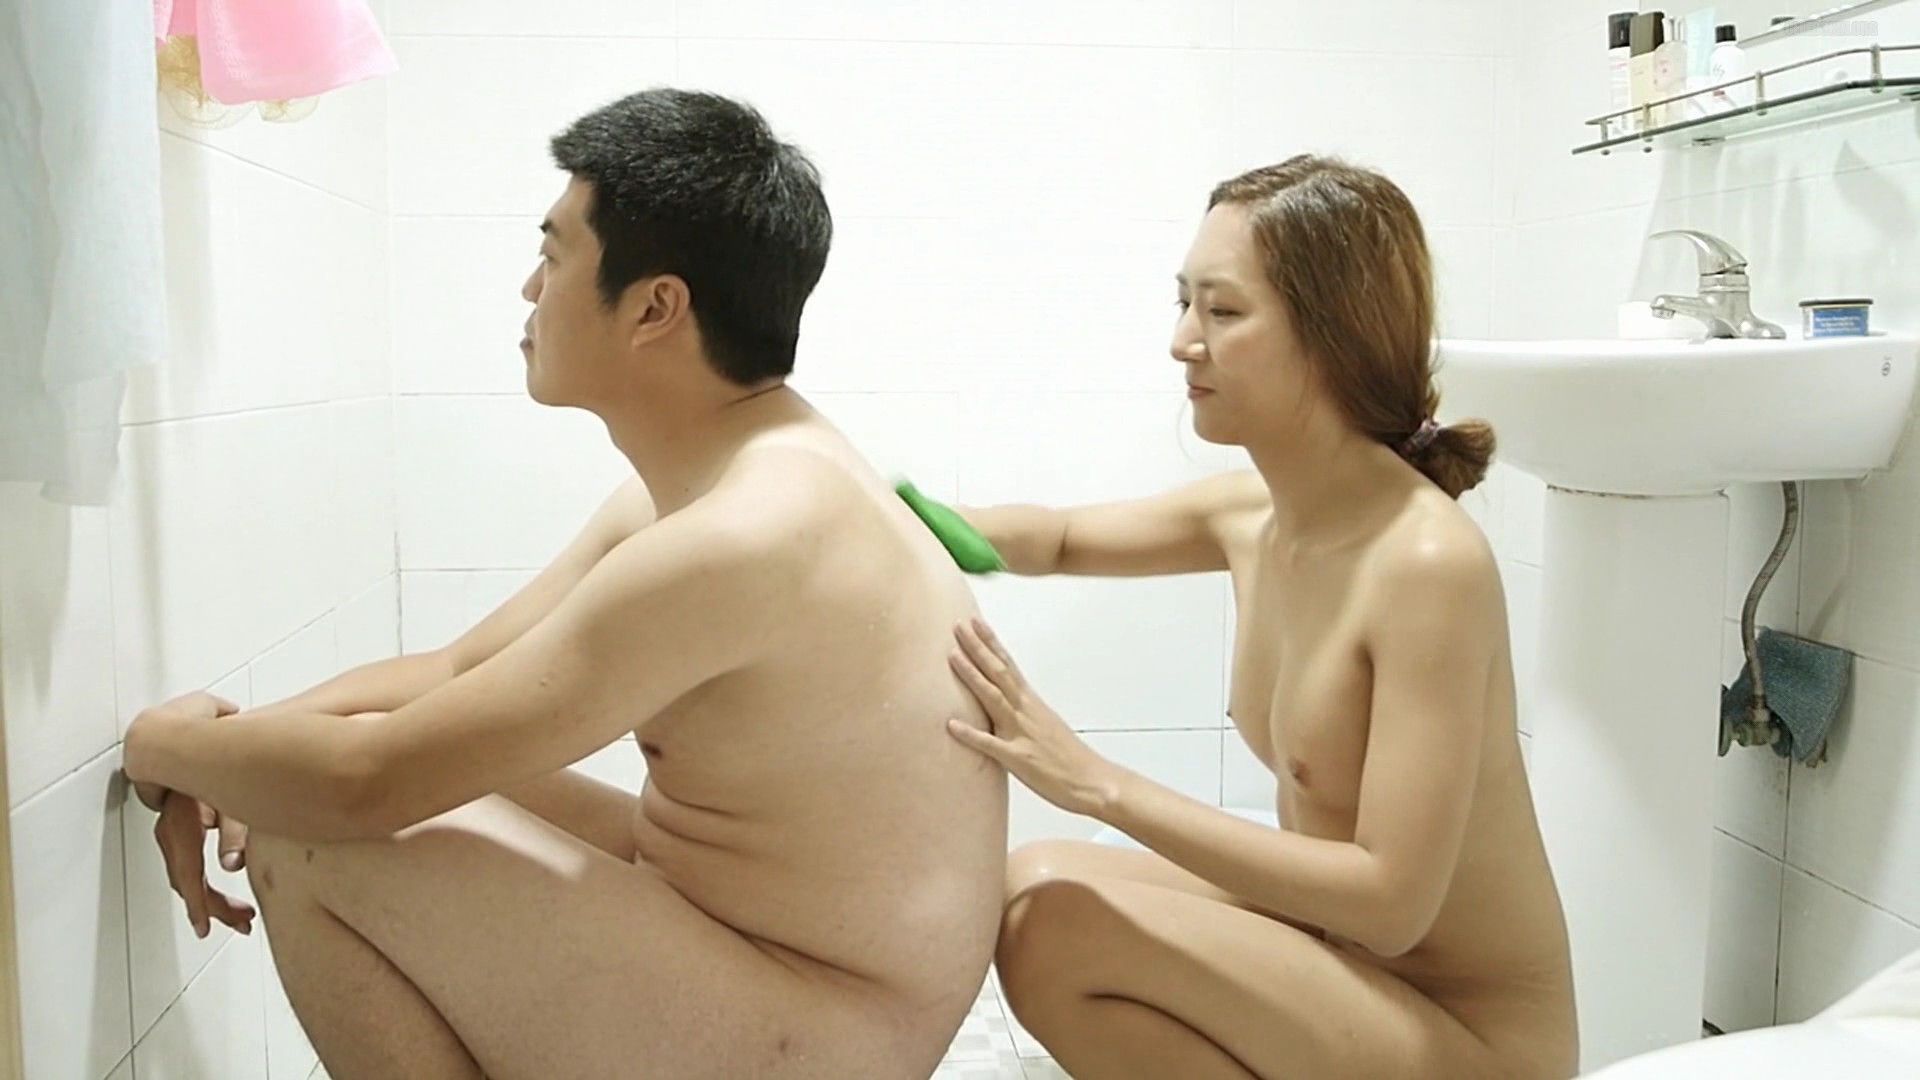 Korea actress sexy naked photo — photo 14